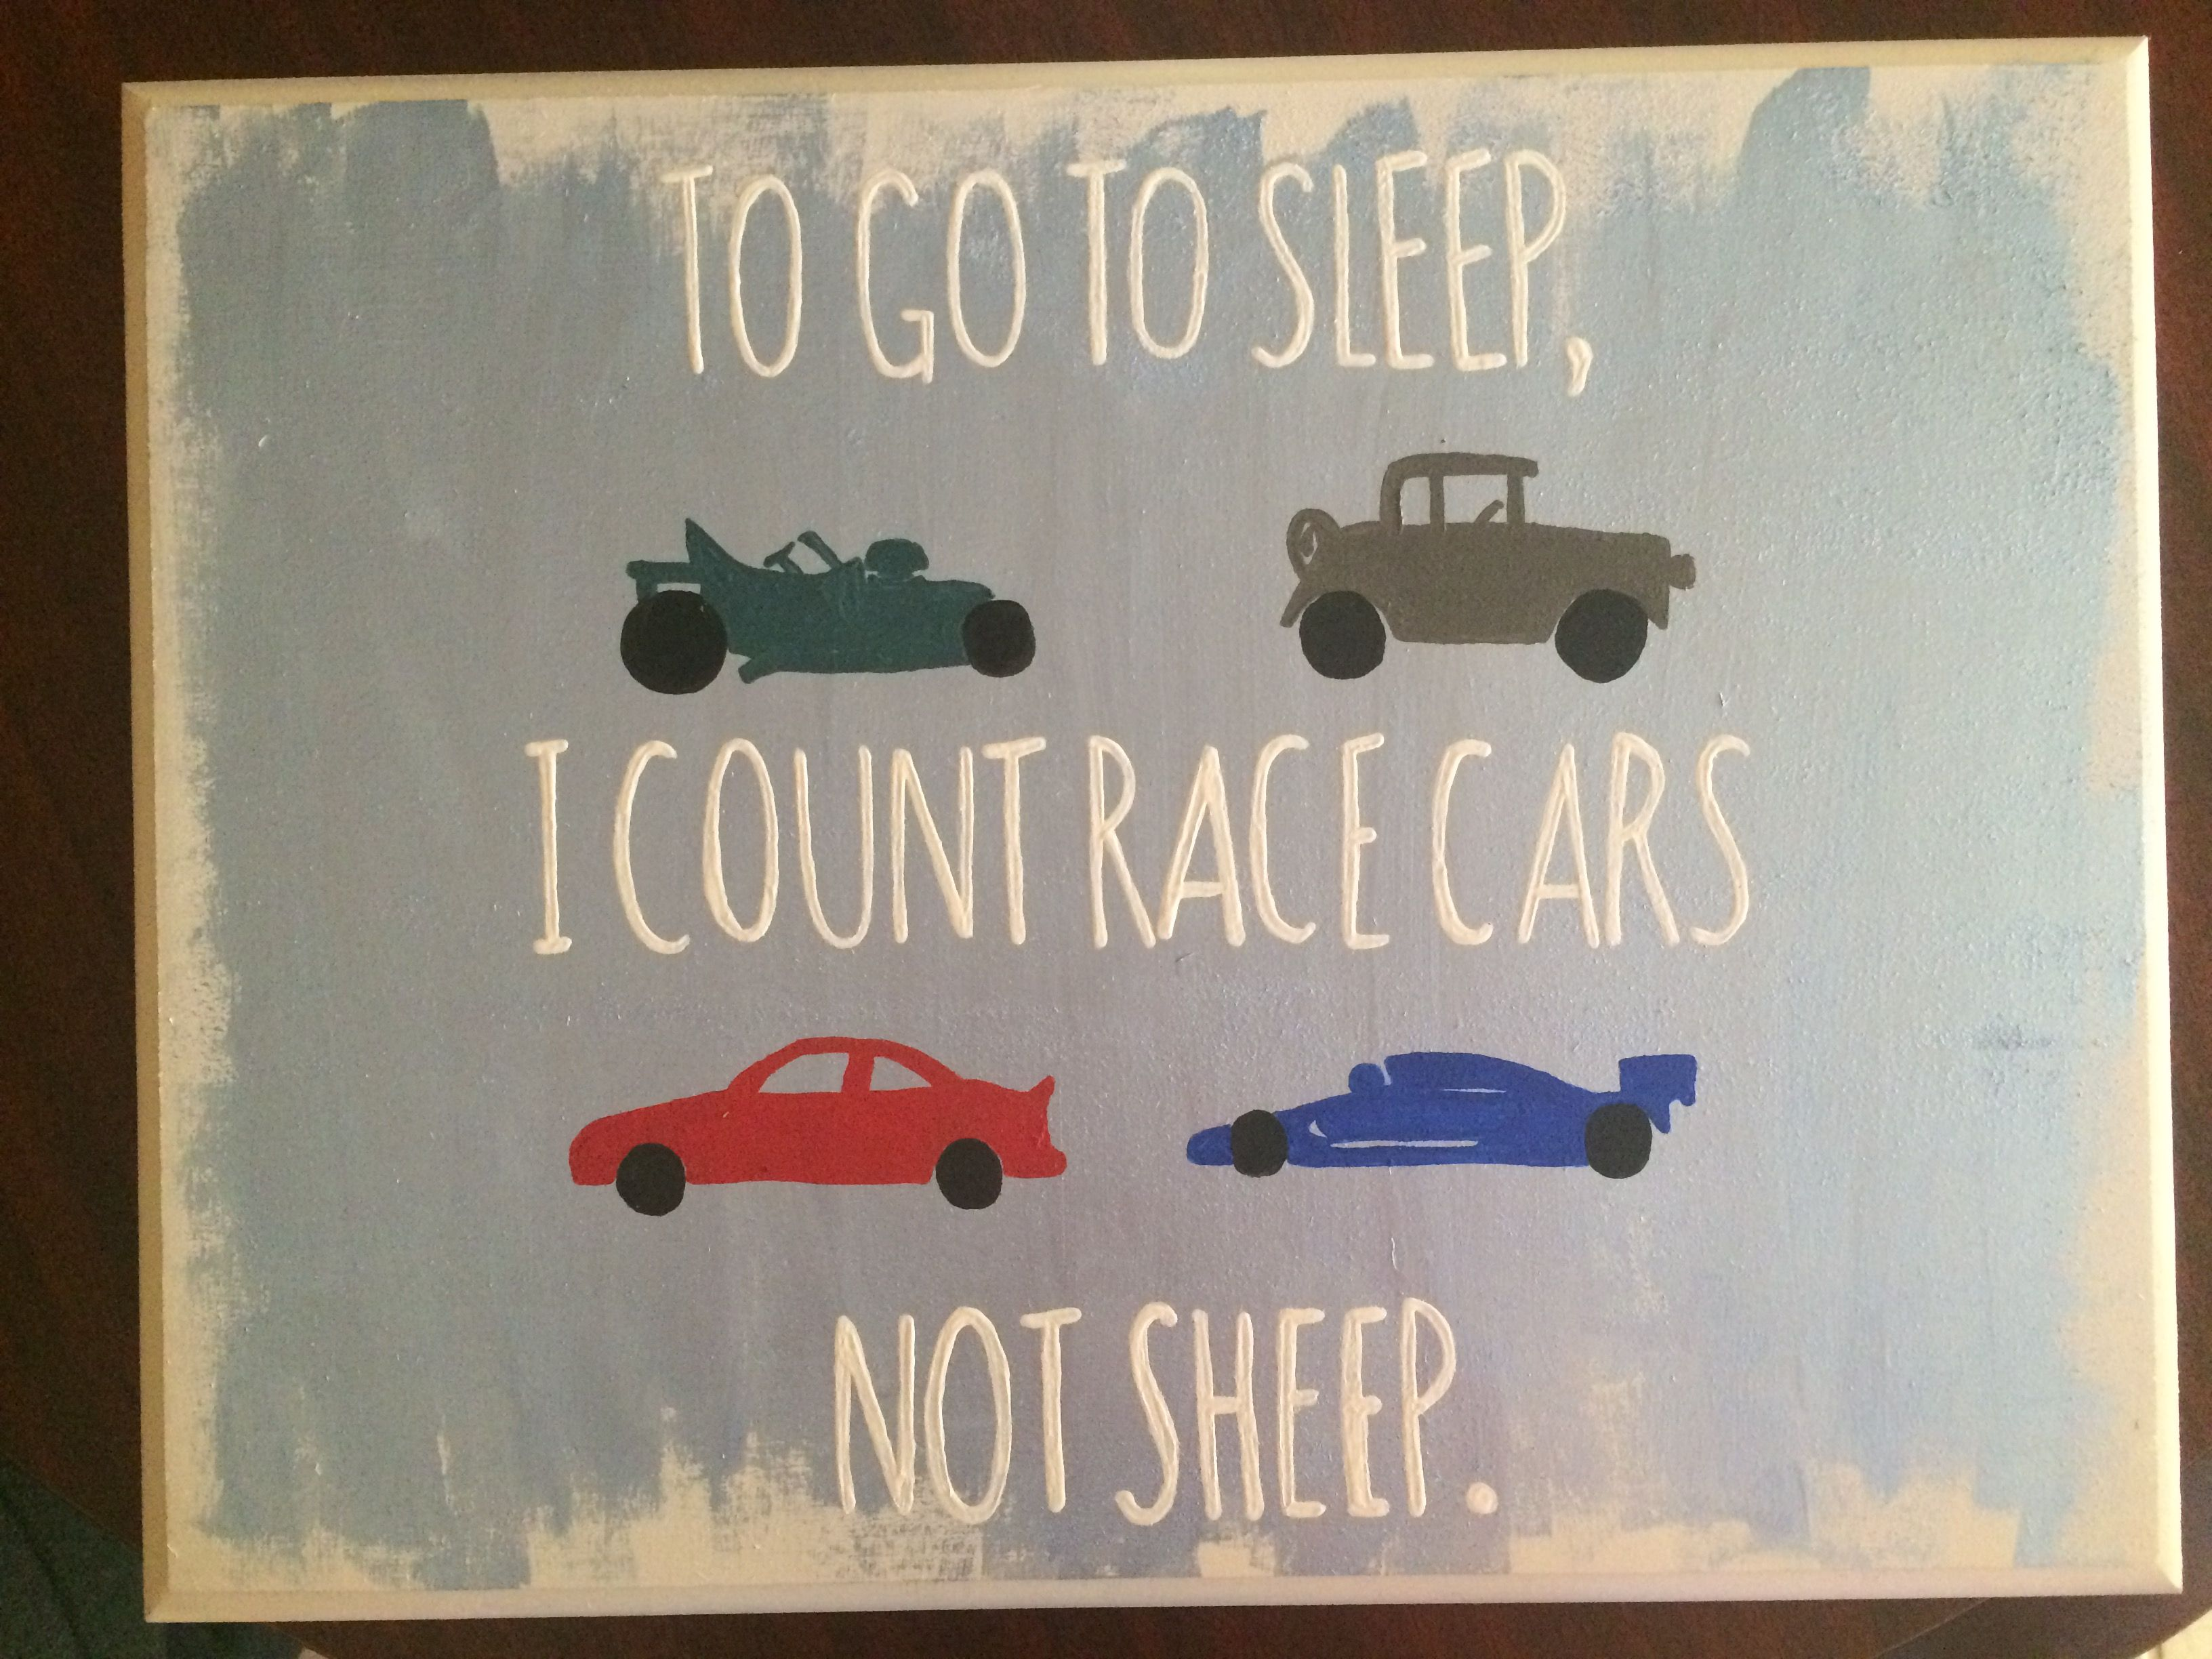 Baby boy room decor cars - To Go To Sleep I Count Race Cars Not Sheep Baby Boy Car Lover Room